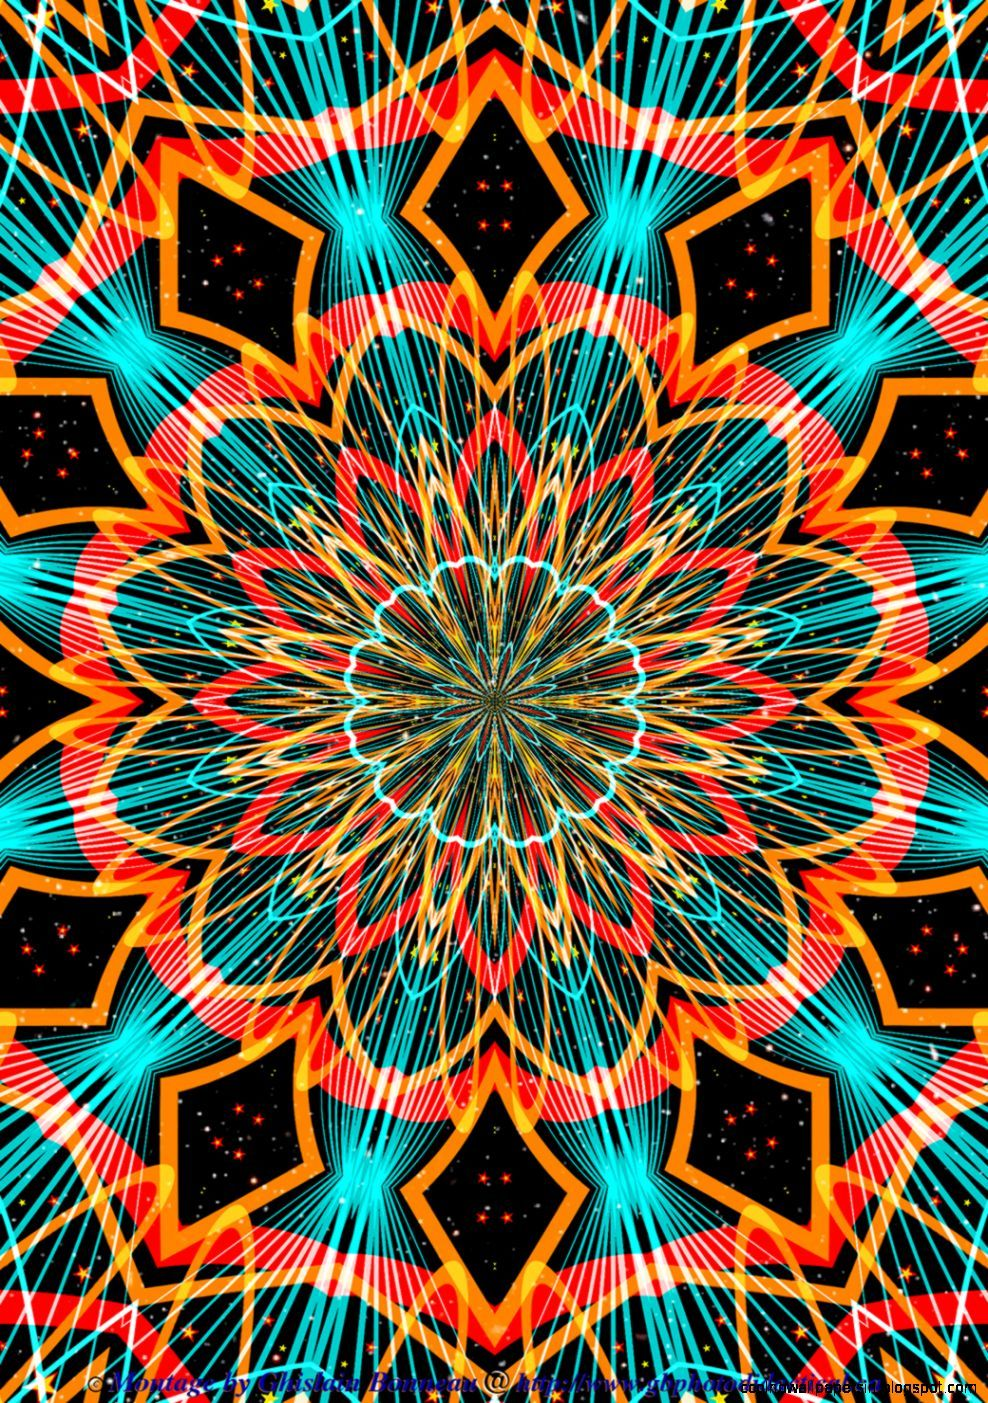 Cool Trippy Scenery iPhone Wallpapers - Top Free Cool Trippy Scenery iPhone Backgrounds ...